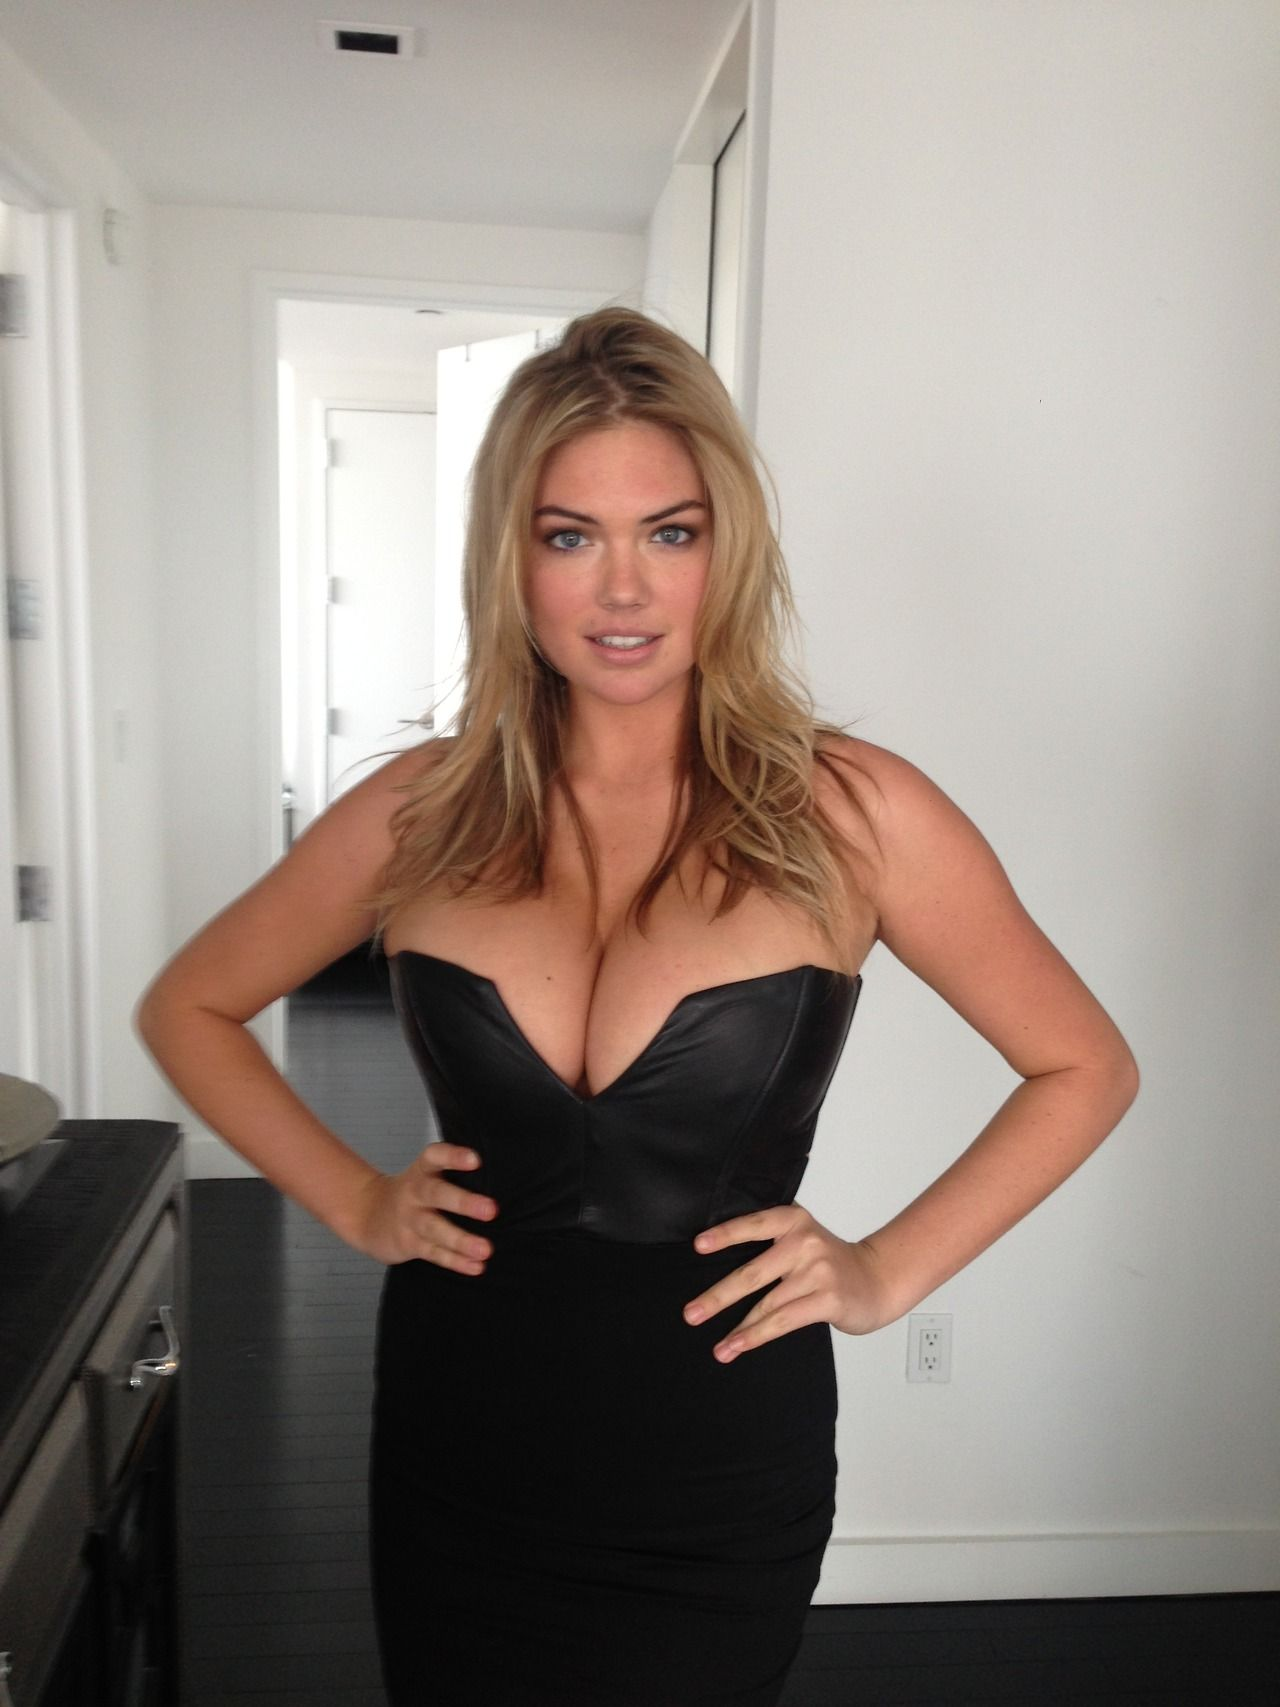 pinsexy photos on kate upton fappening leaked photos | pinterest